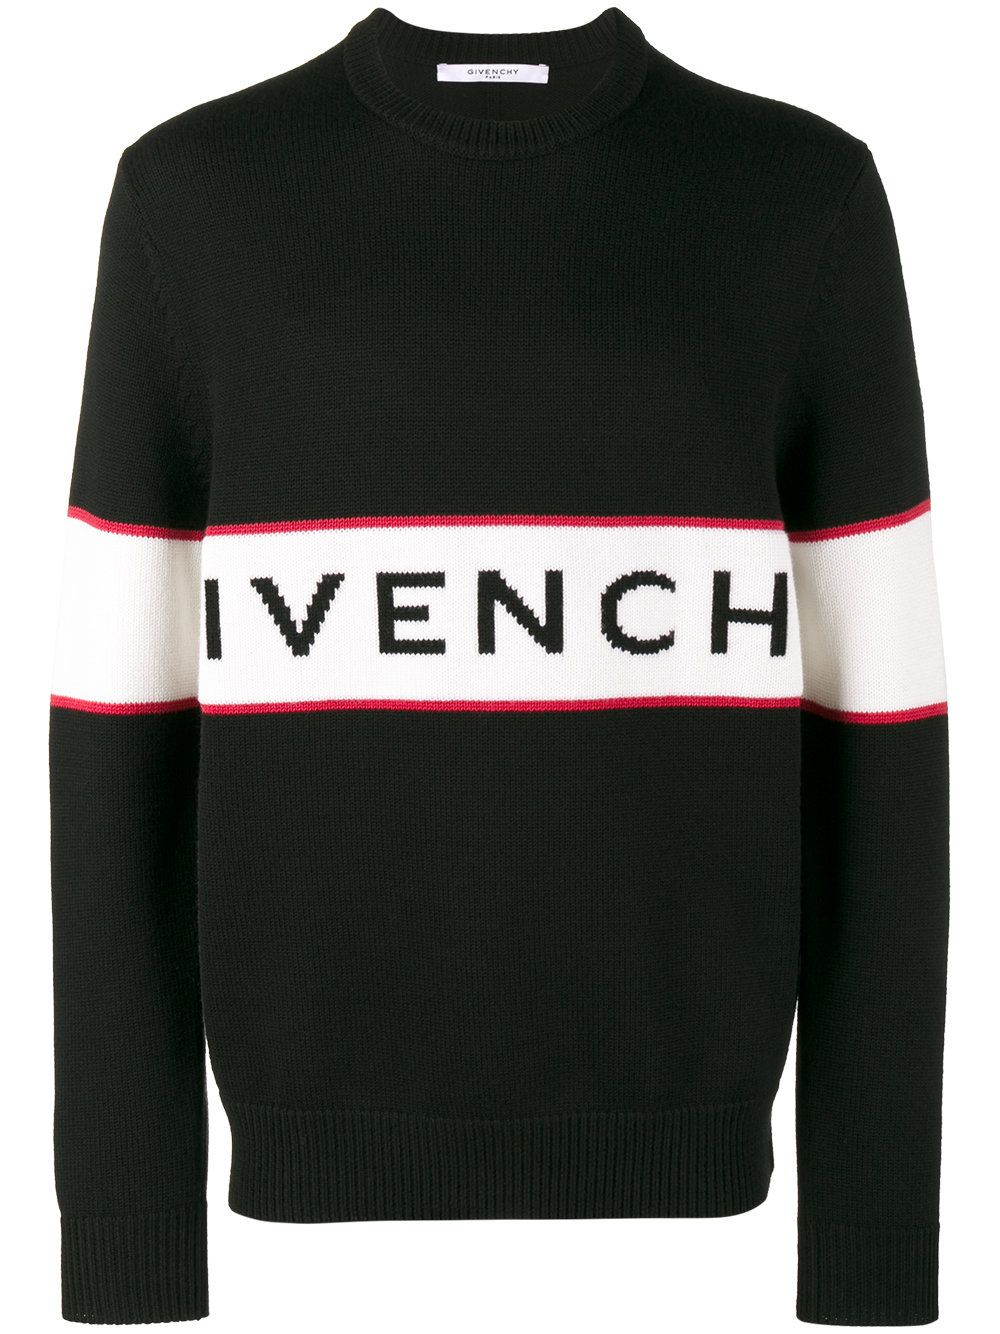 givenchy  new  men  logo  sweater  jersey  style  fashion www.jofre ... c772a8eb5800